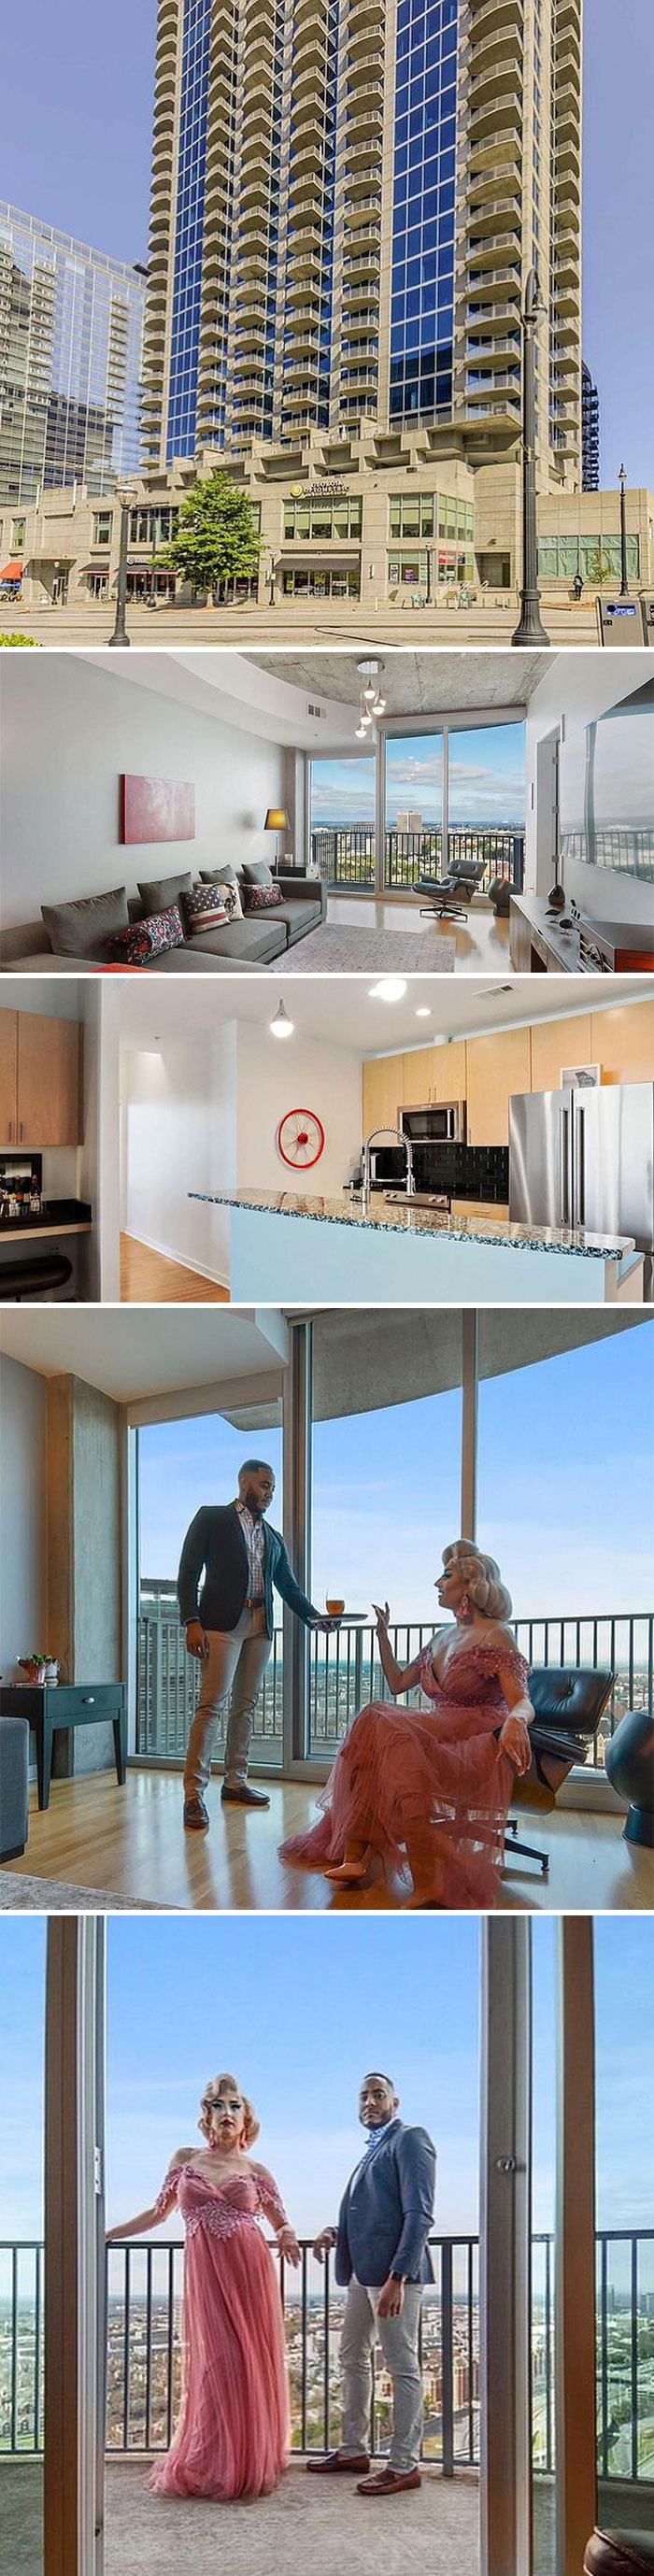 At A Certain Point I Feel Like They May Be Doing This Just For Us But I Can't Resist Lol. $392,000. 2 Bd, 2 Ba. 1,200 Sf